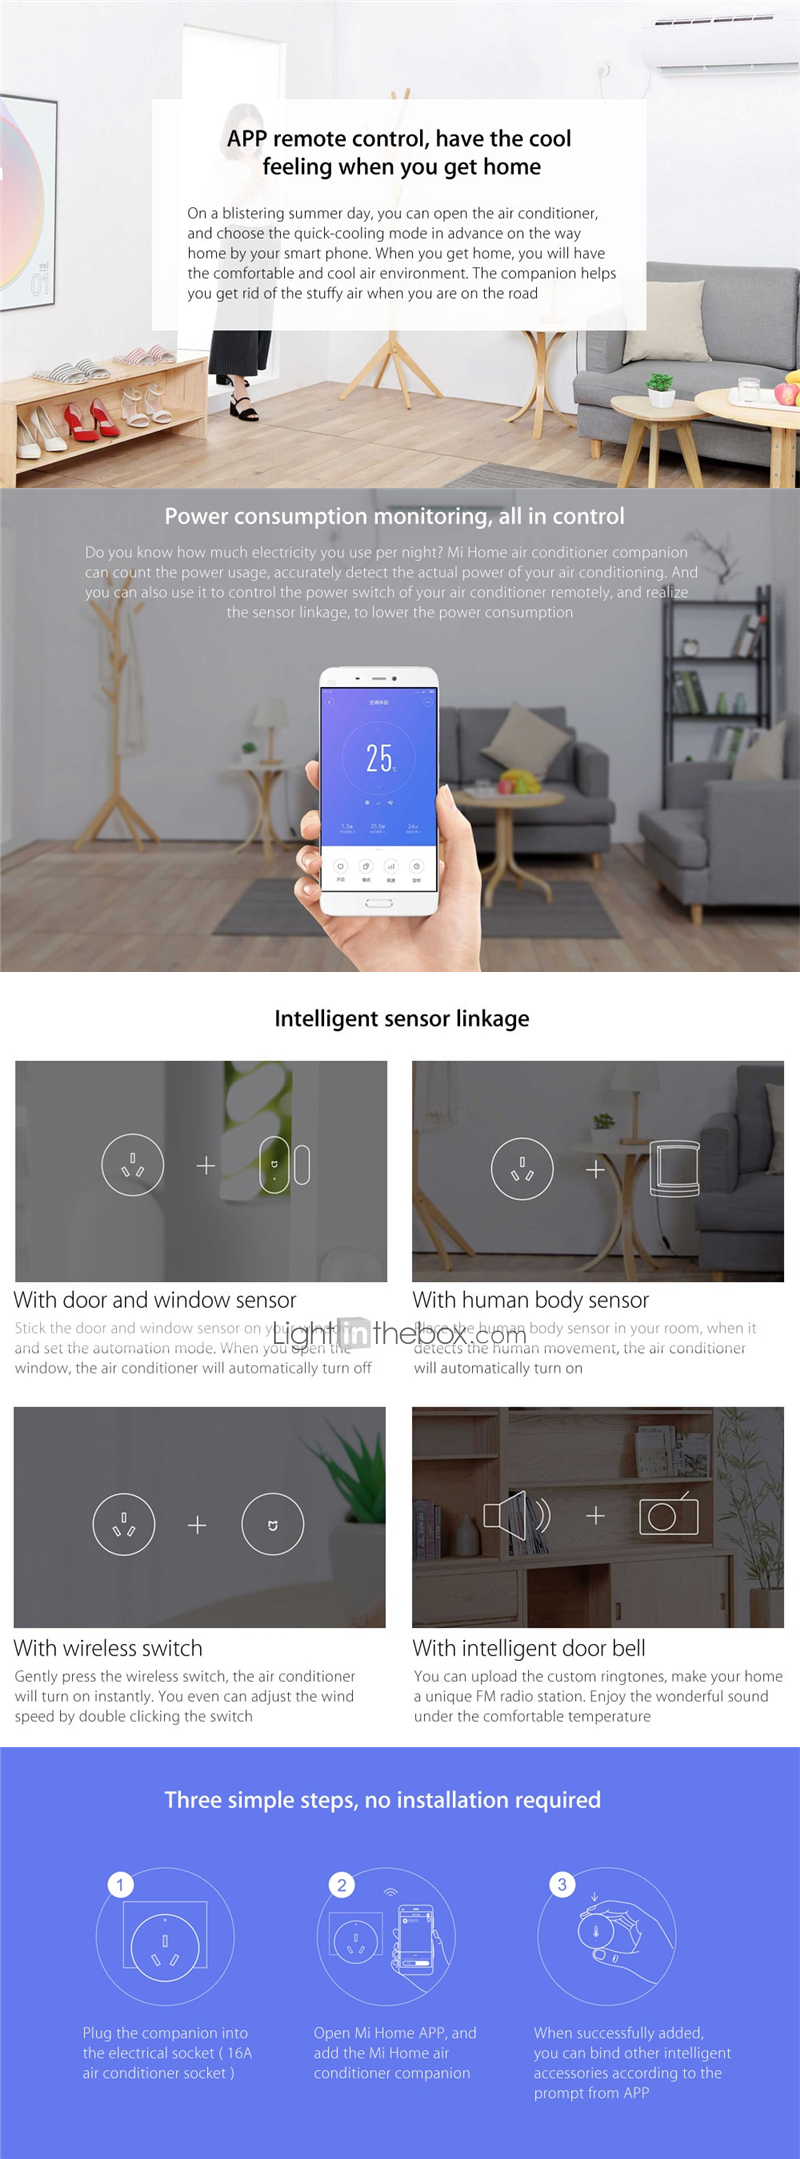 Xiaomi Mi Home Air Conditioner Companion - WHITE Smart Socket APP Control  Sleeping Mode WiFi ZigBee Technology Power Monitor APP Control